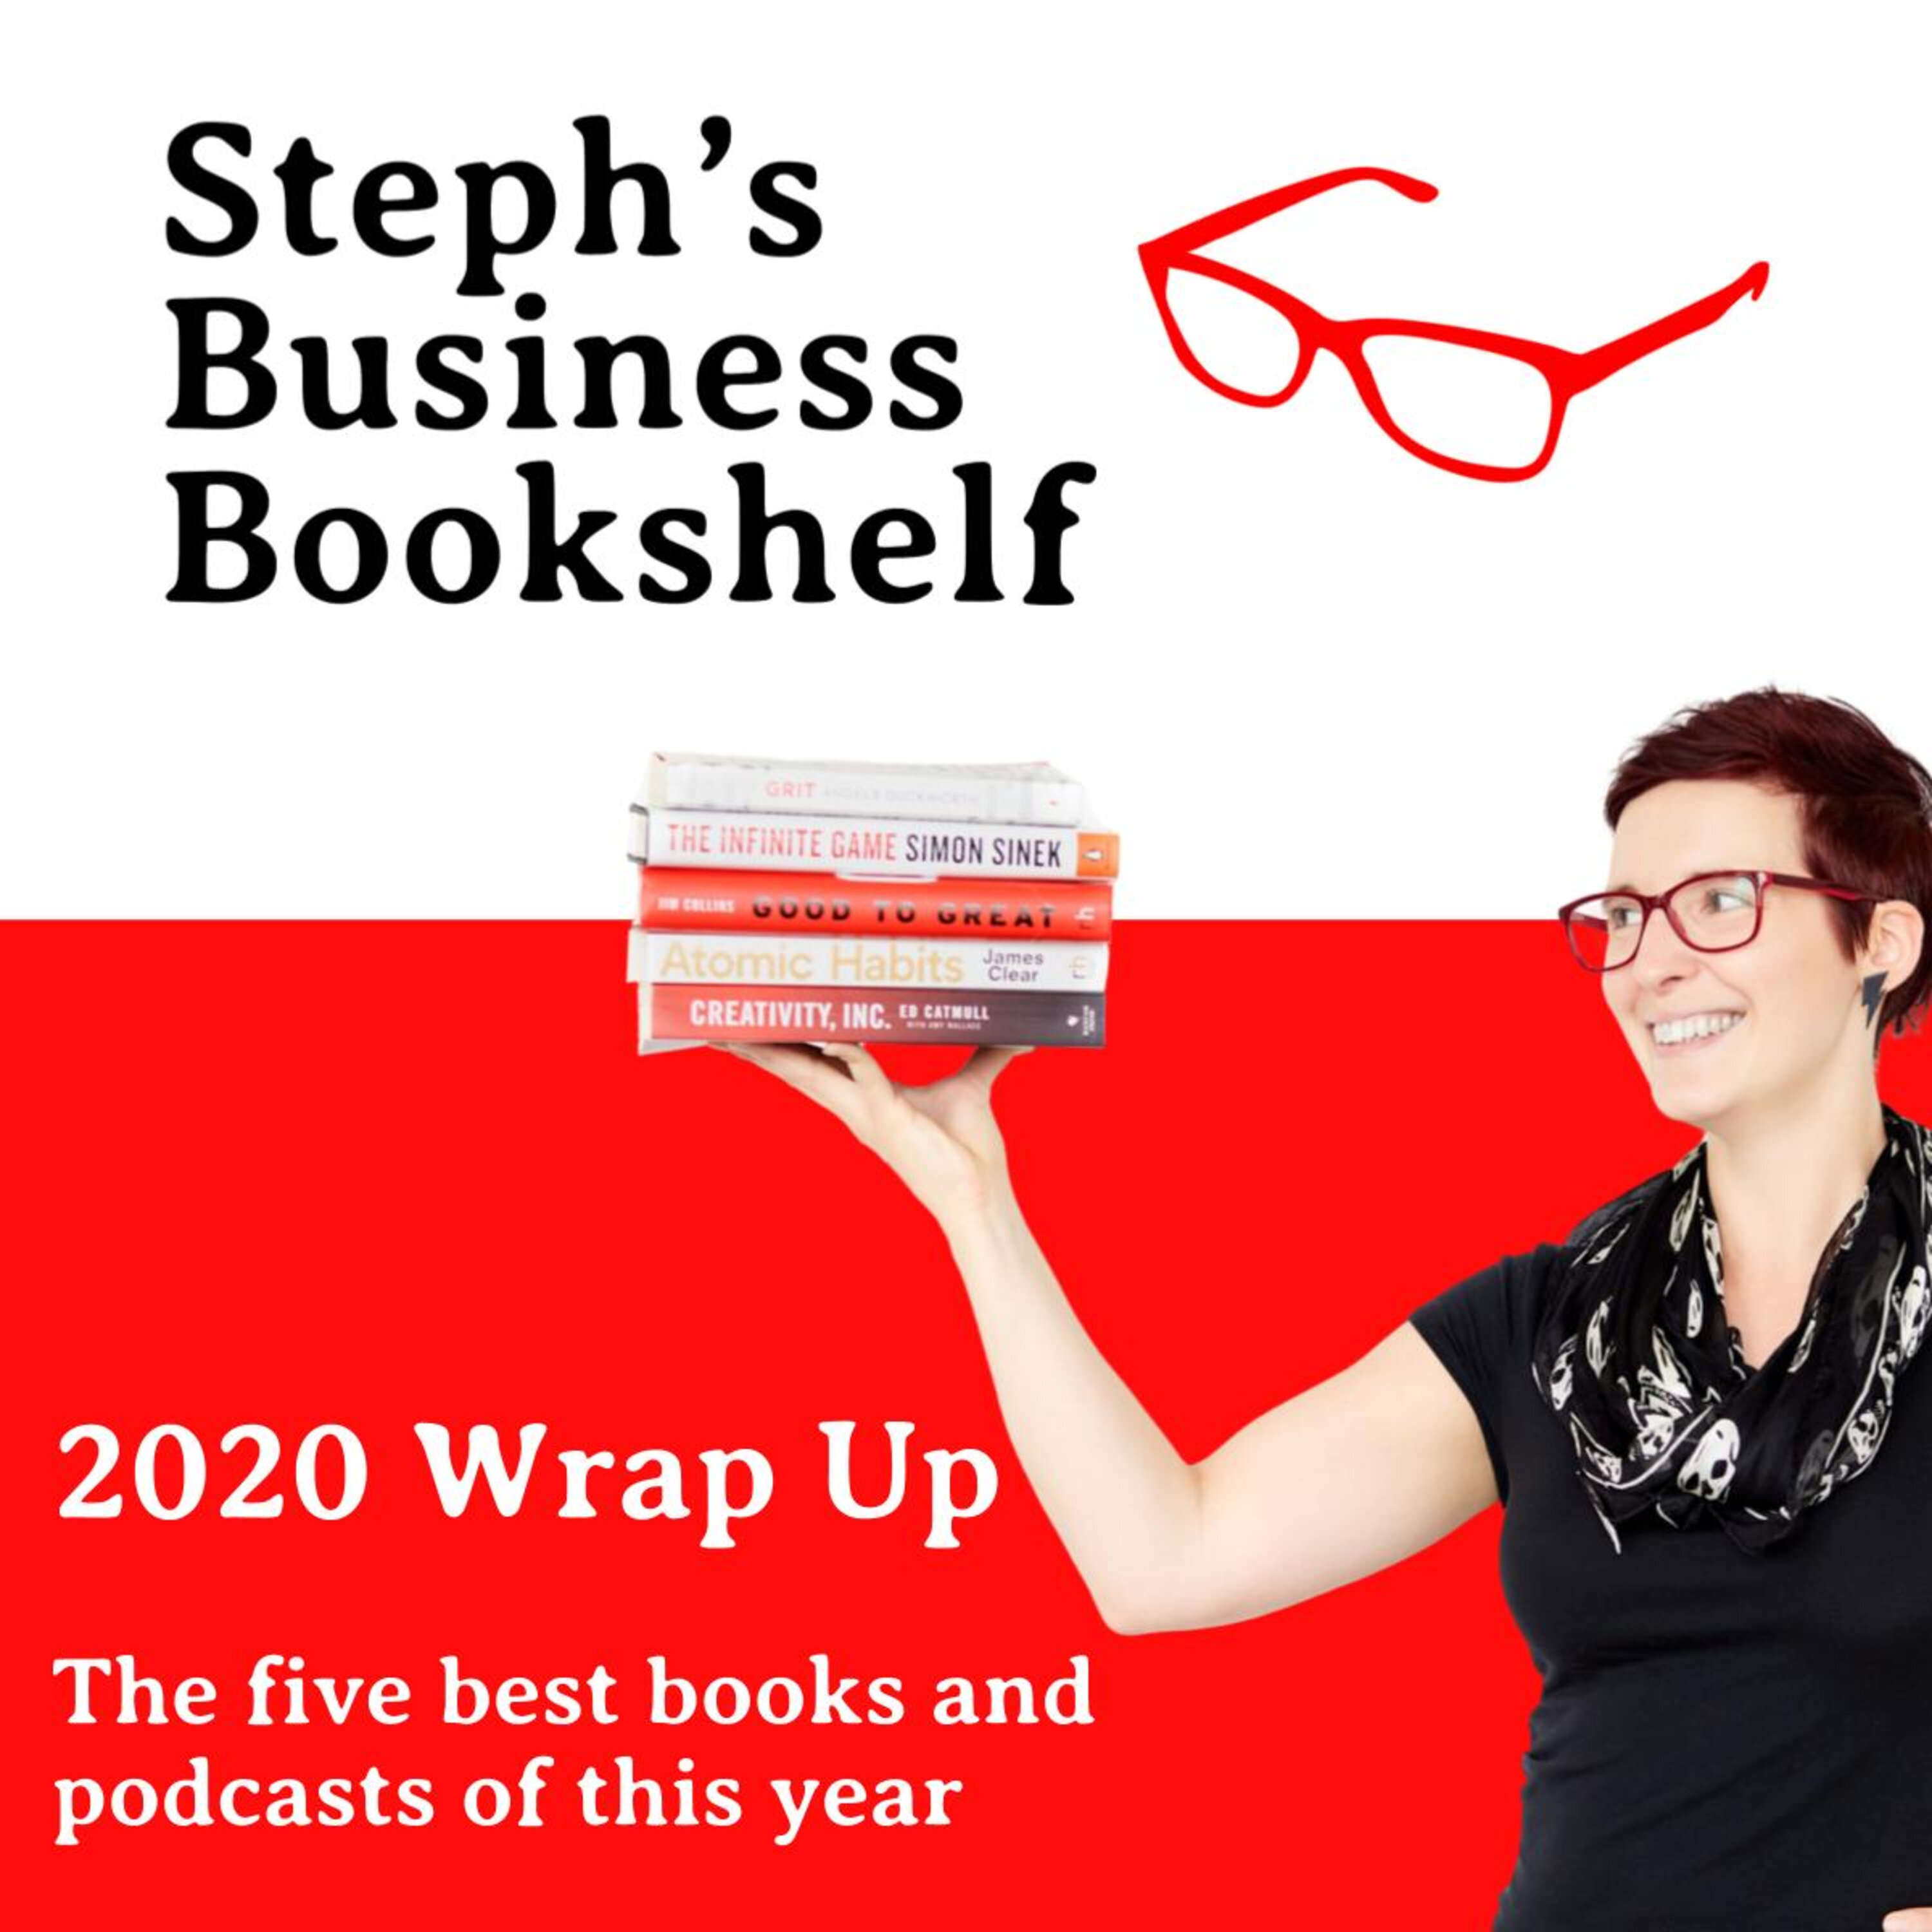 2020 Wrapped Up: The five best books and podcasts of this year